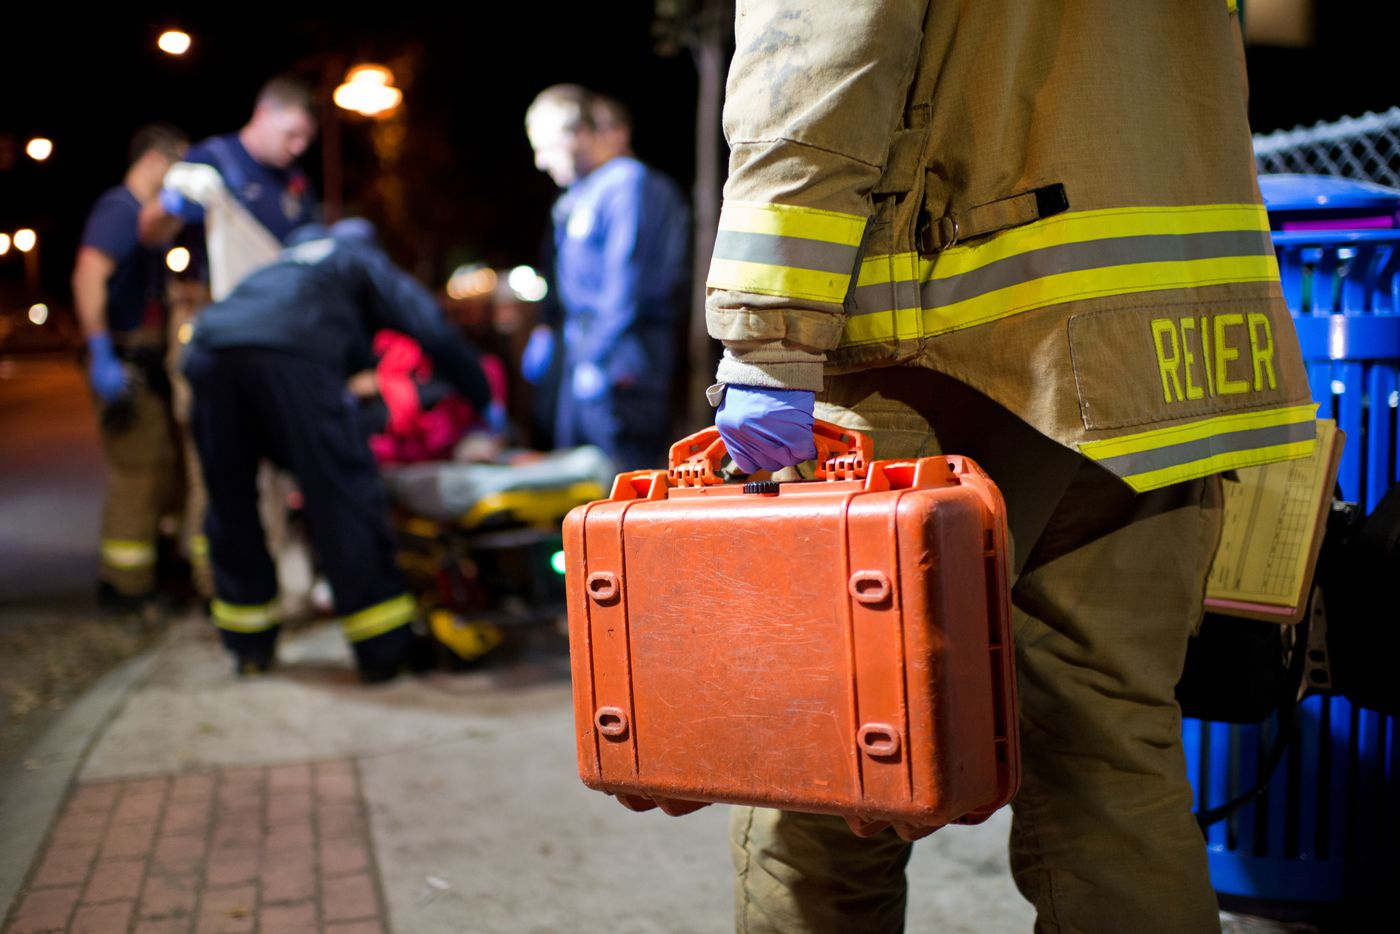 "Anchorage Firefighters assist a woman near 13 Avenue and Hyder Street. The intoxicated woman complained of an heart rhythm irregularities and was transported to a hospital. Medic Matt Eckart said the demands on the fire department by intoxicated people can wear down firefighters. ""We take them to the hospital, they release them, they go to Anchorage Safety Patrol and they just sober up to get out and go do this – drinking – again. It's just a big cycle,"" he said. Photographed on Friday, October 17, 2014. Marc Lester / ADN"